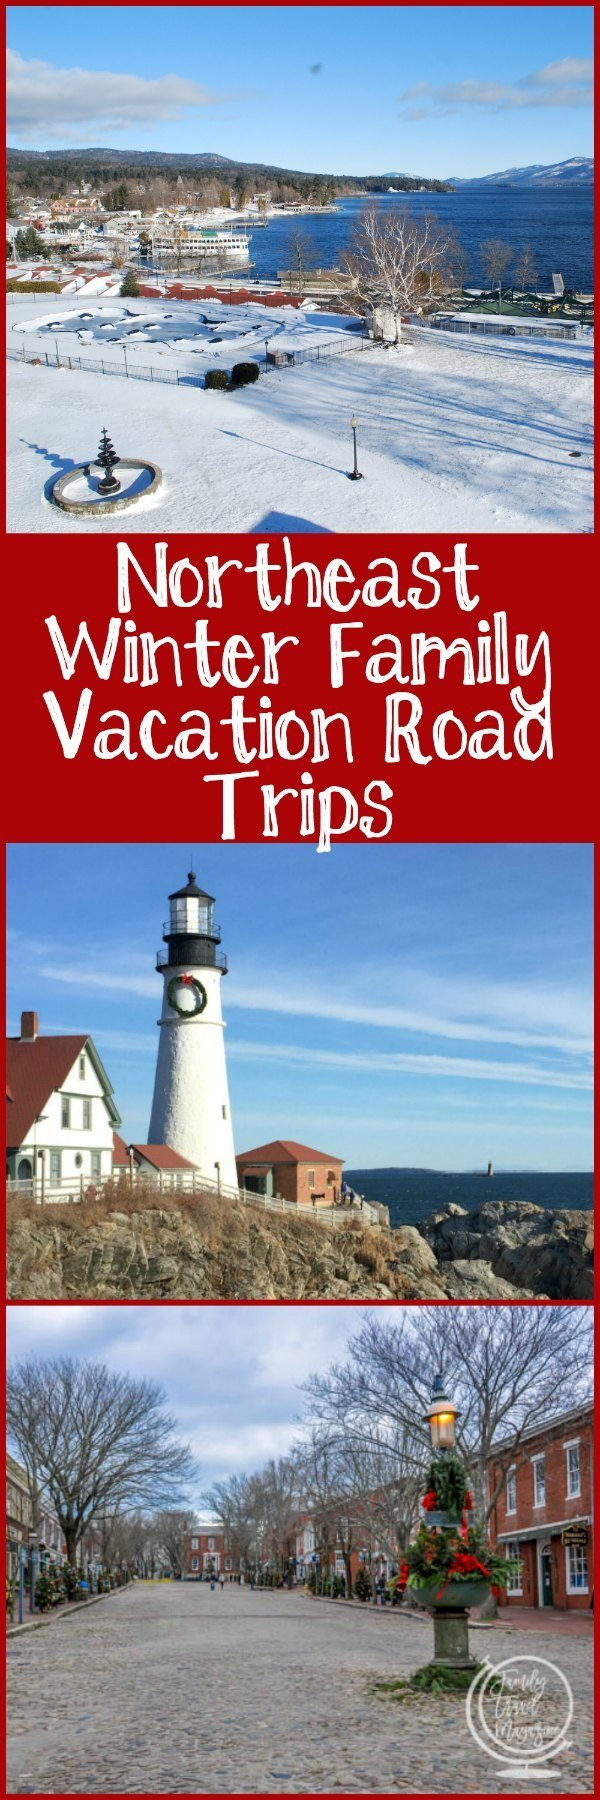 Northeast winter family vacation road trips, including ideas for Christmas in the Northeast.